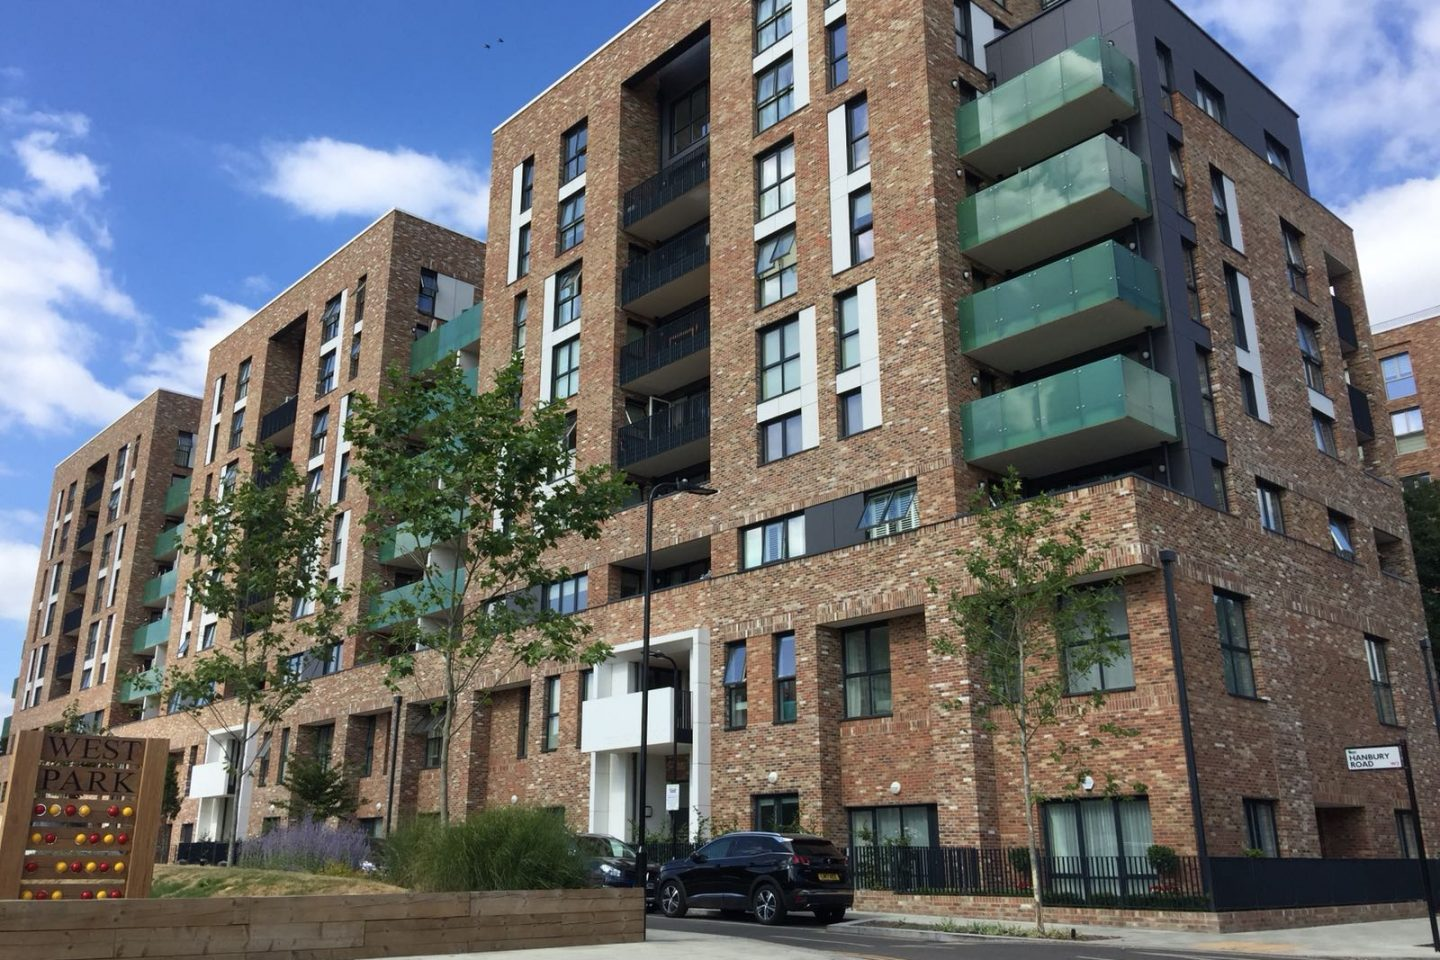 Acton Gardens Private Rental by L&Q, W3